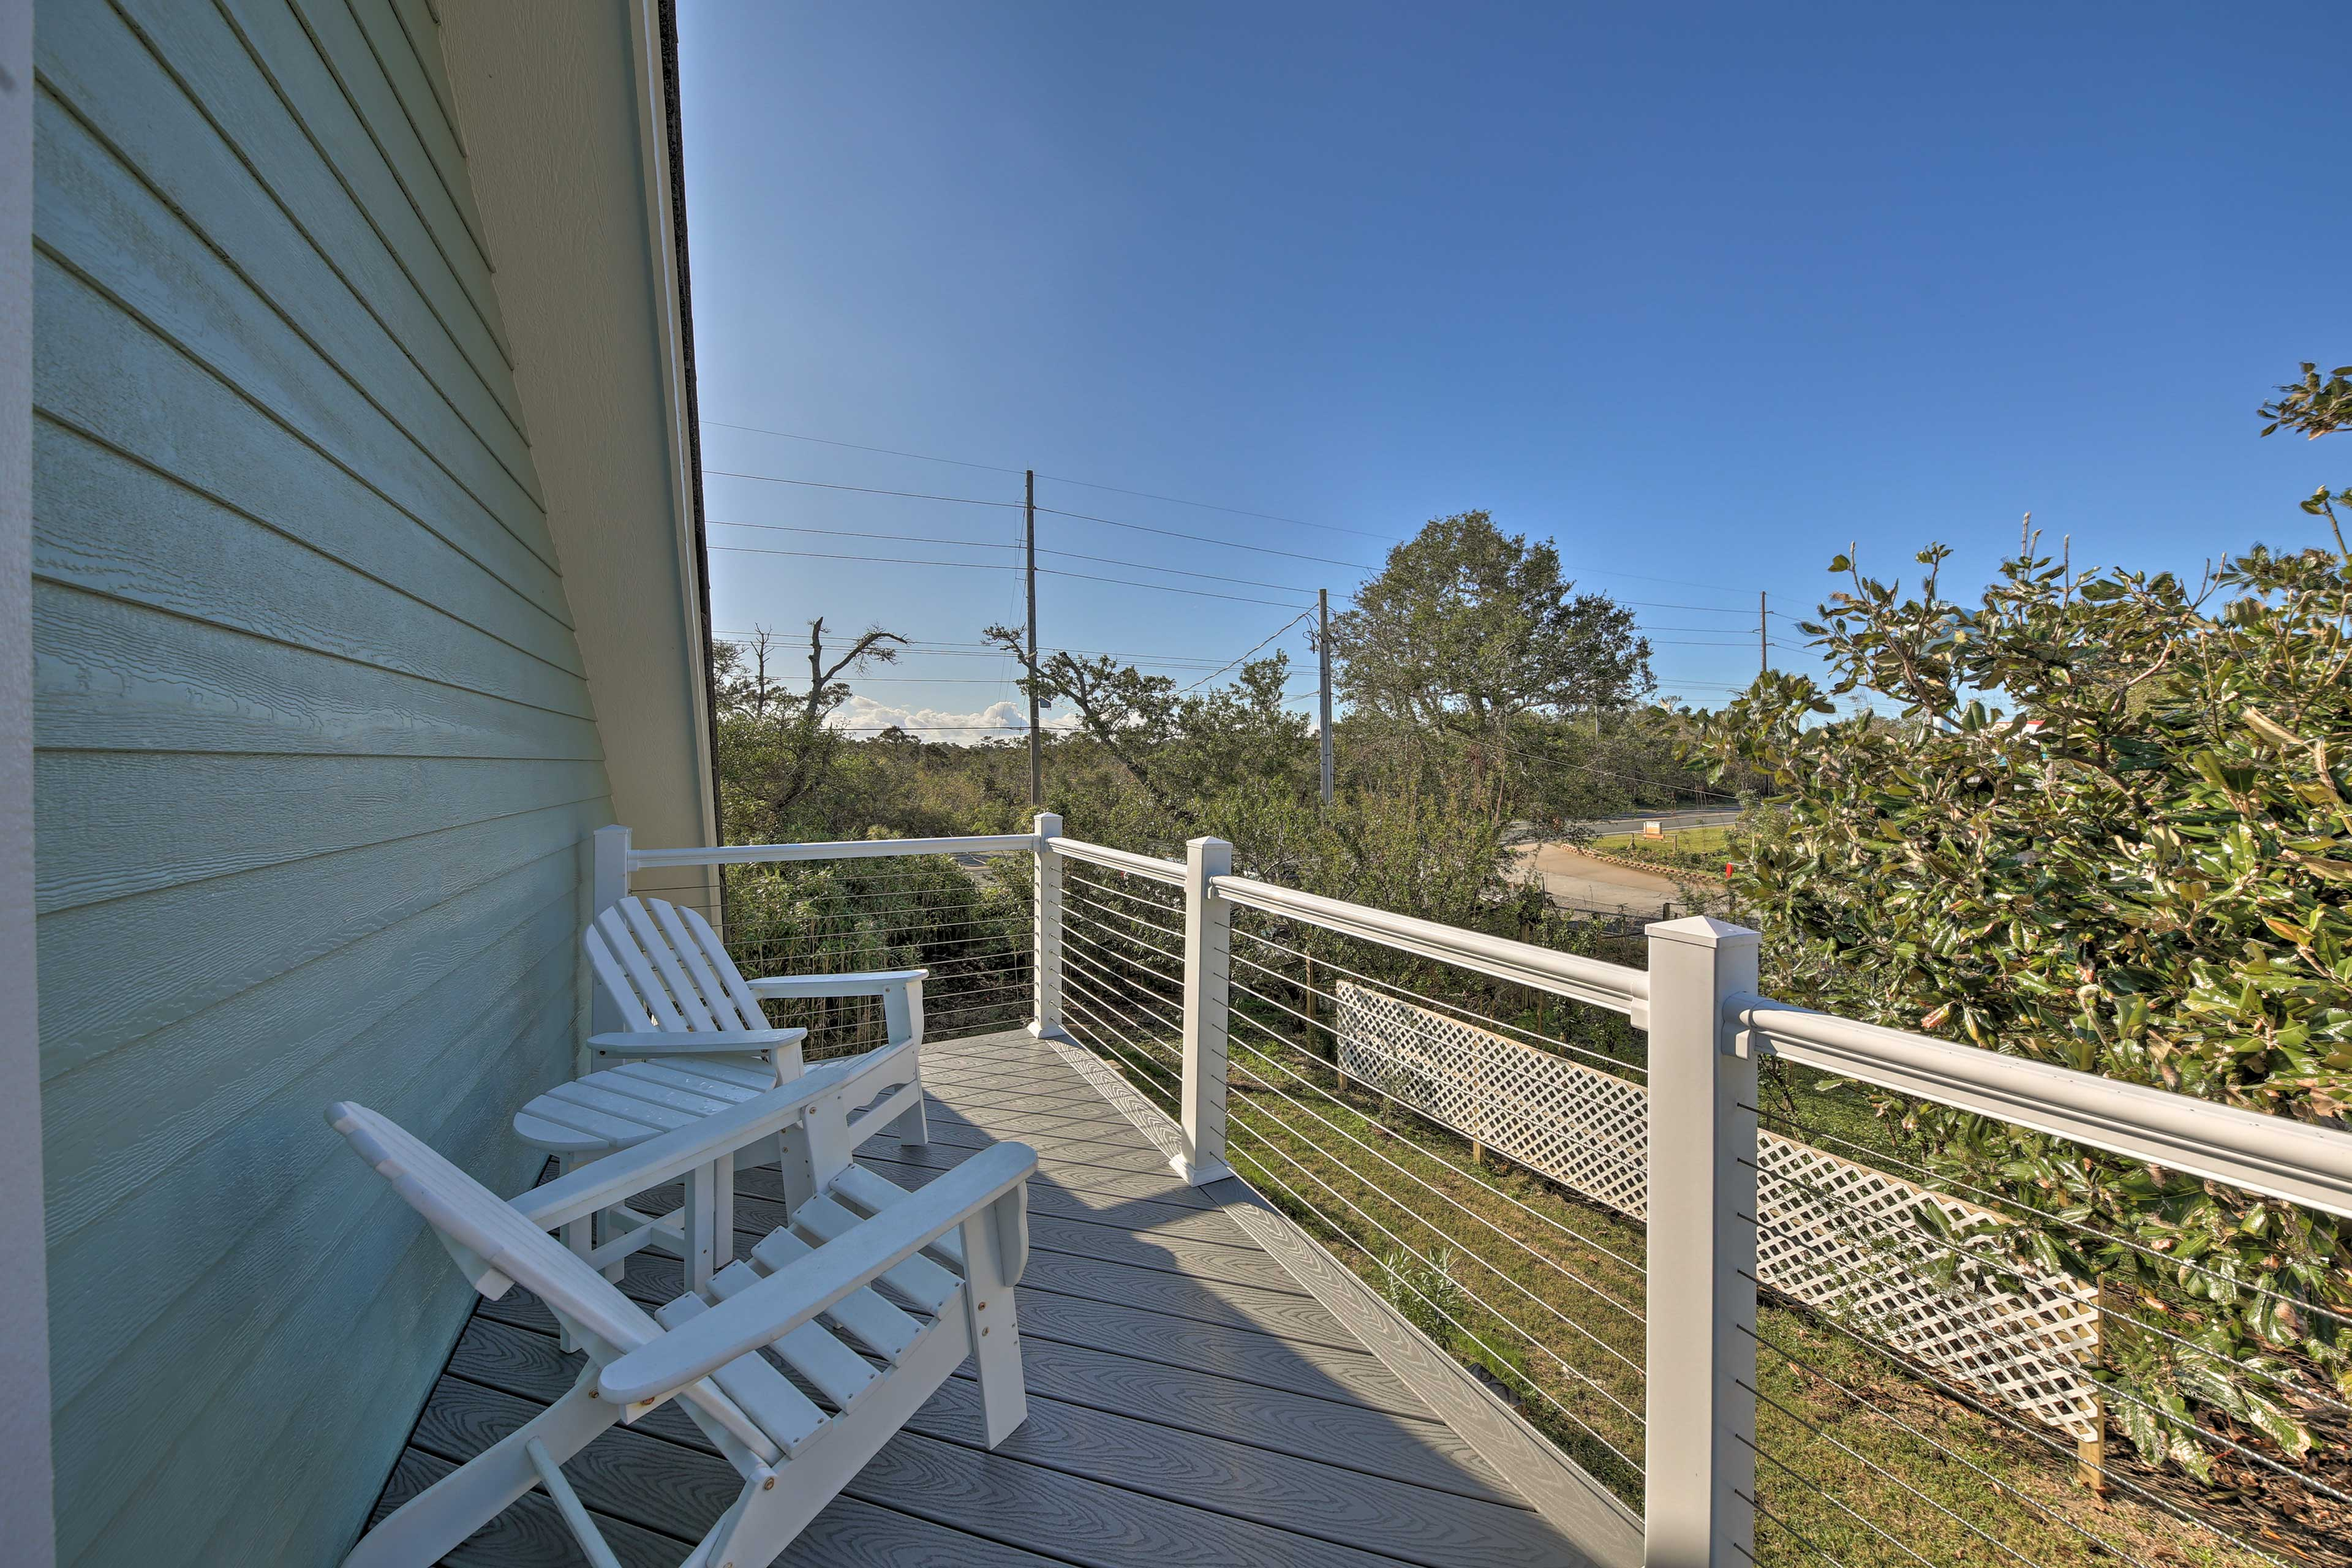 Bask in the fresh seaside air on the private balcony.